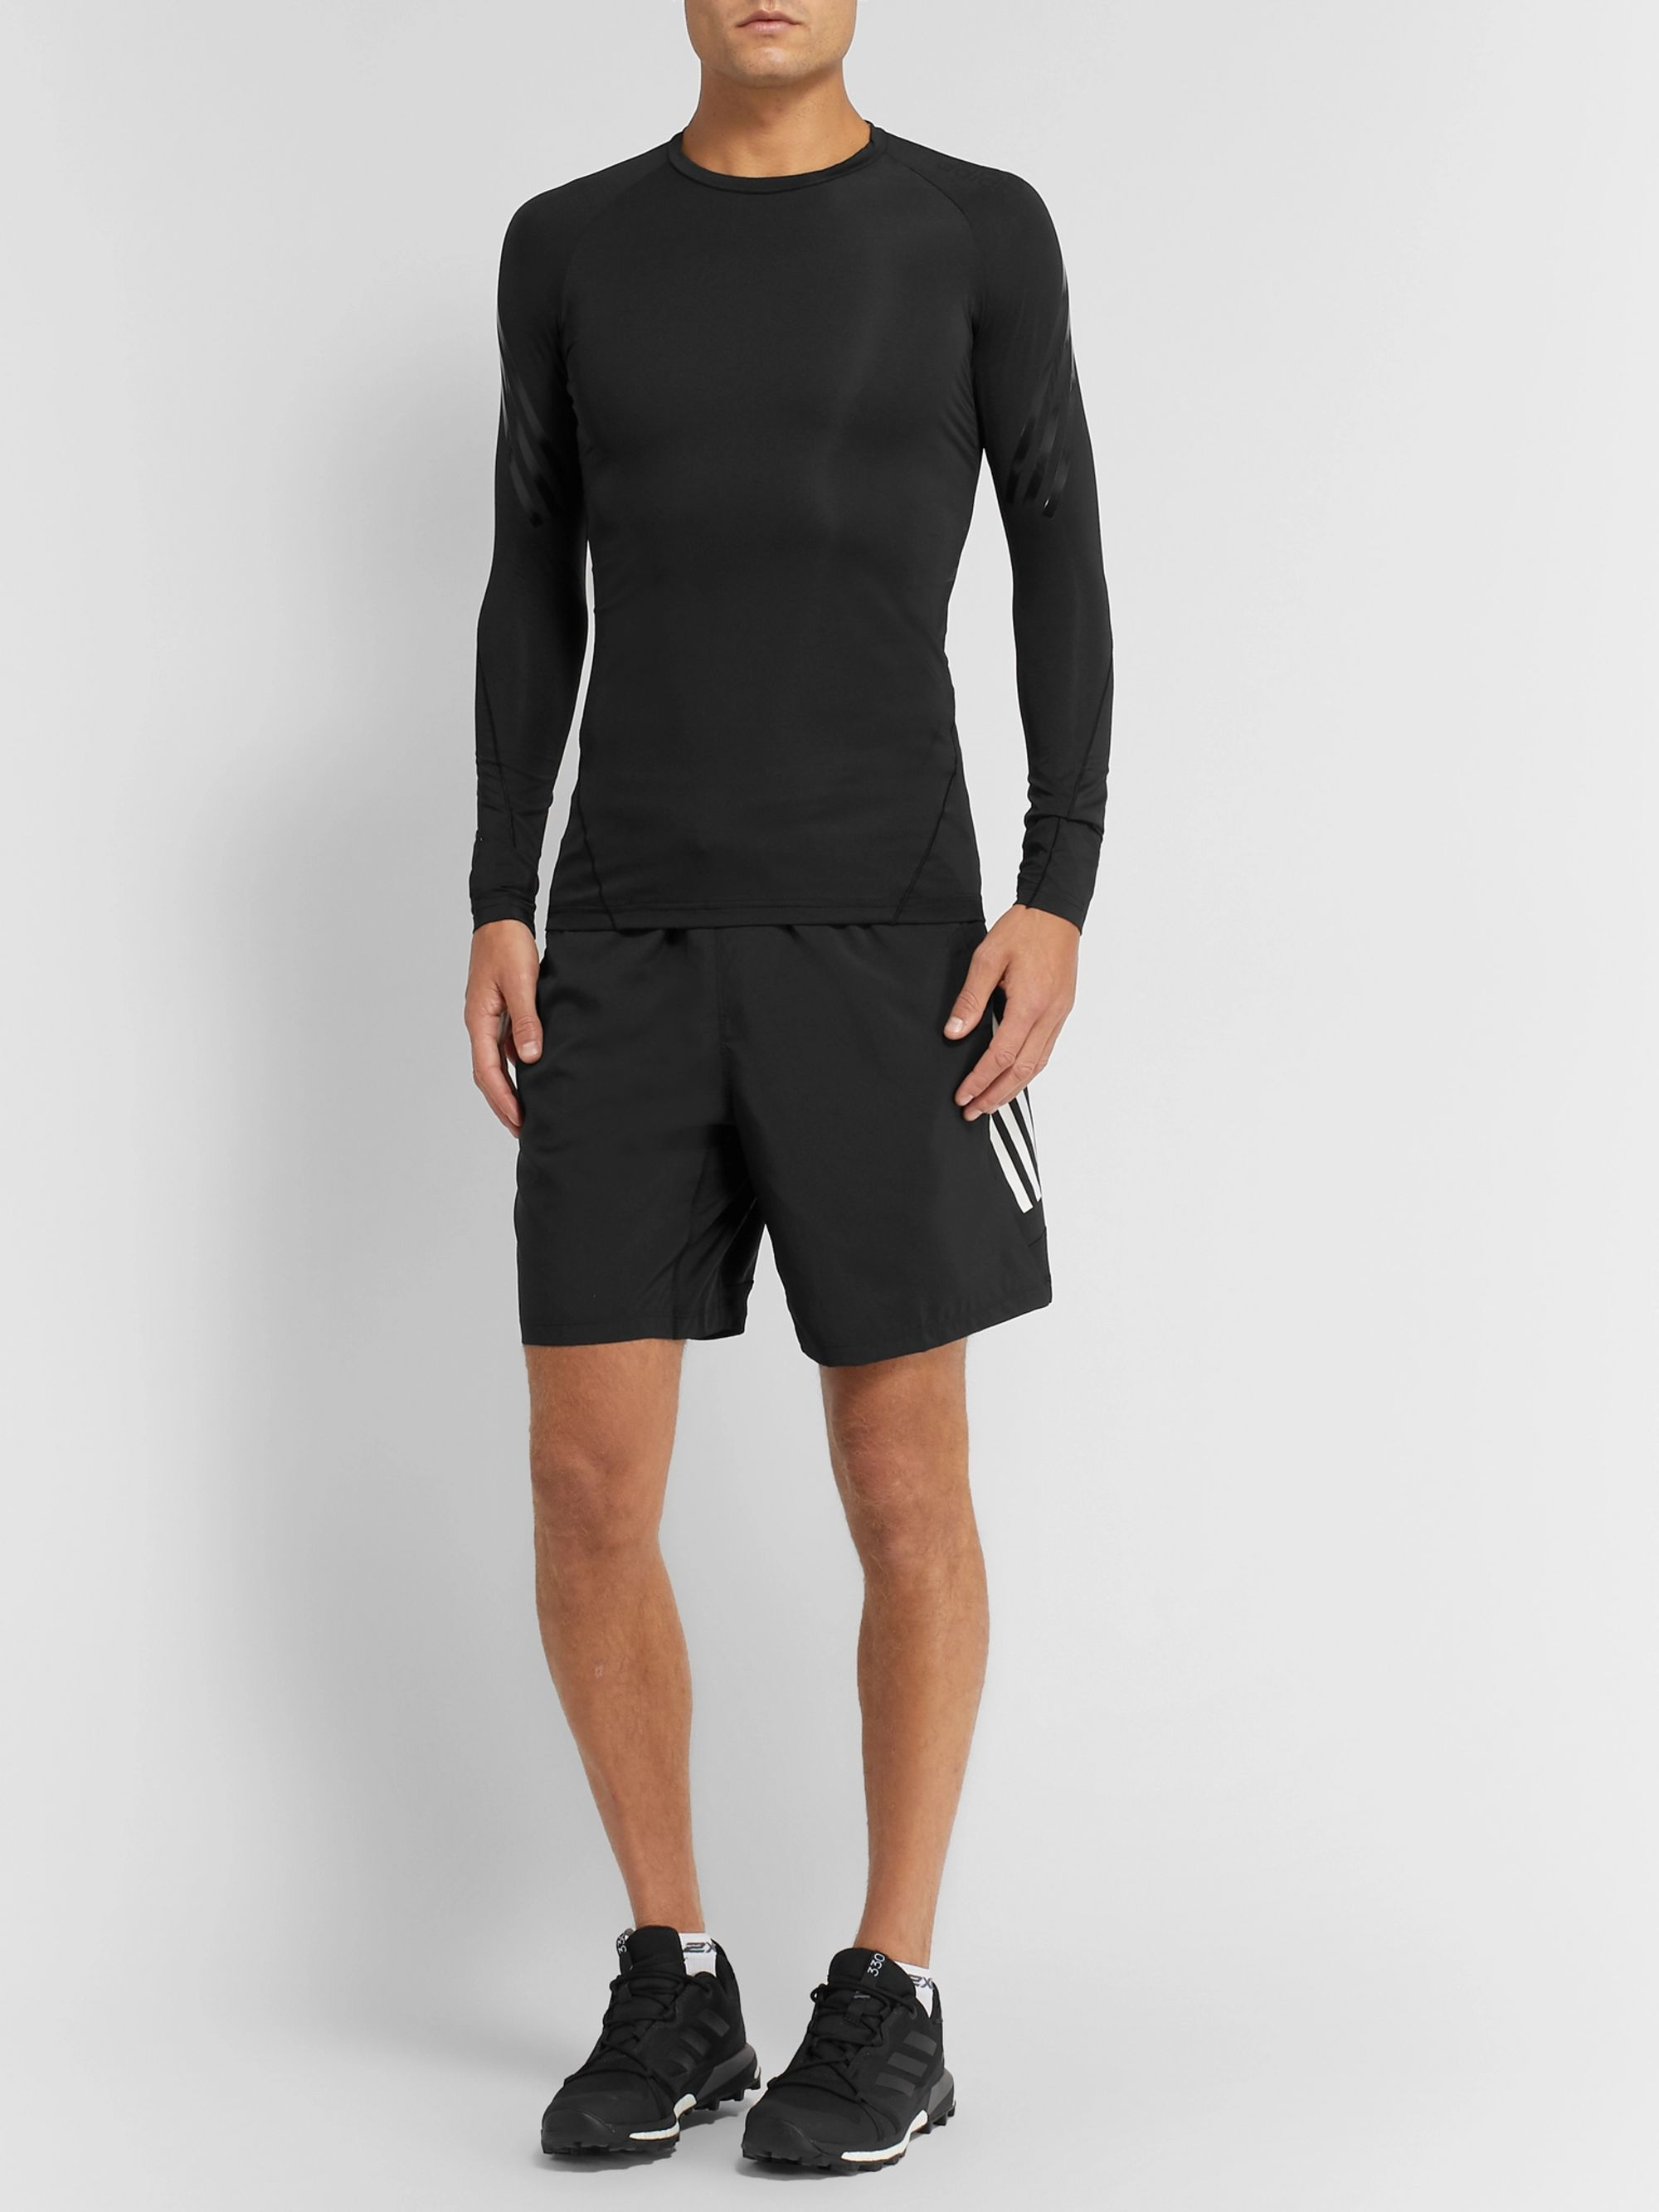 Adidas Sport Alphaskin Tech Climachill Top